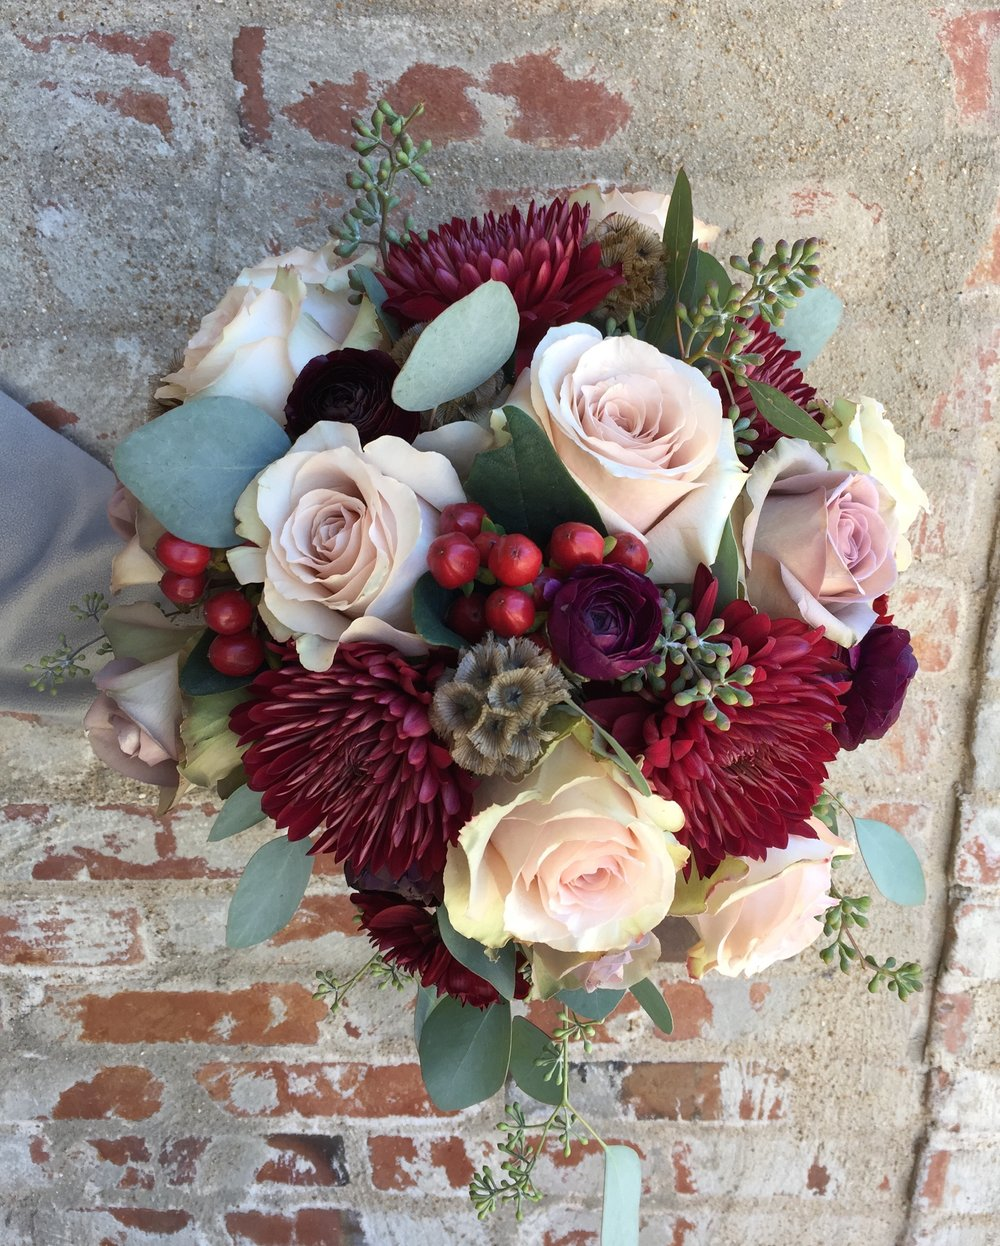 Roses, burgundy fujis, scabiosa pods, and hypericum.